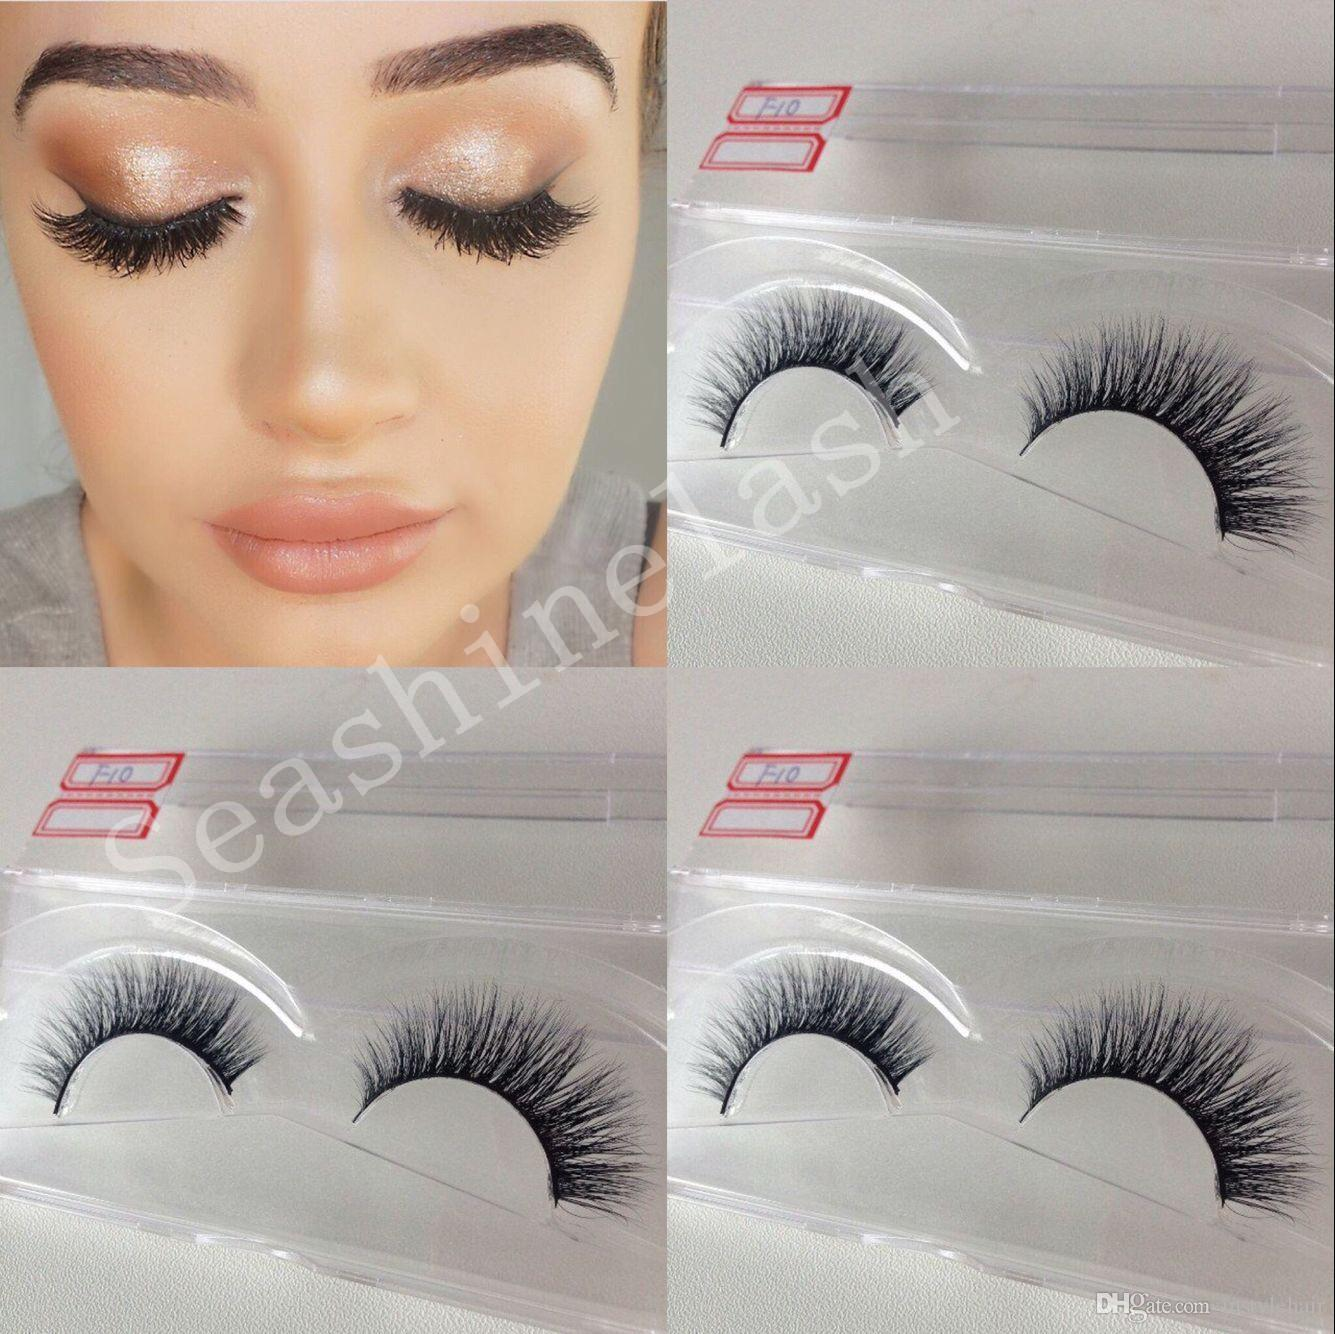 bcb9253ae70 New Handmade Crisscross False Eyelashes 3D Silk Lashes Voluminous to  Fashion Make Up Crisscross False Eyelashes 3D Silk Lashes Eyelashes Online  with ...